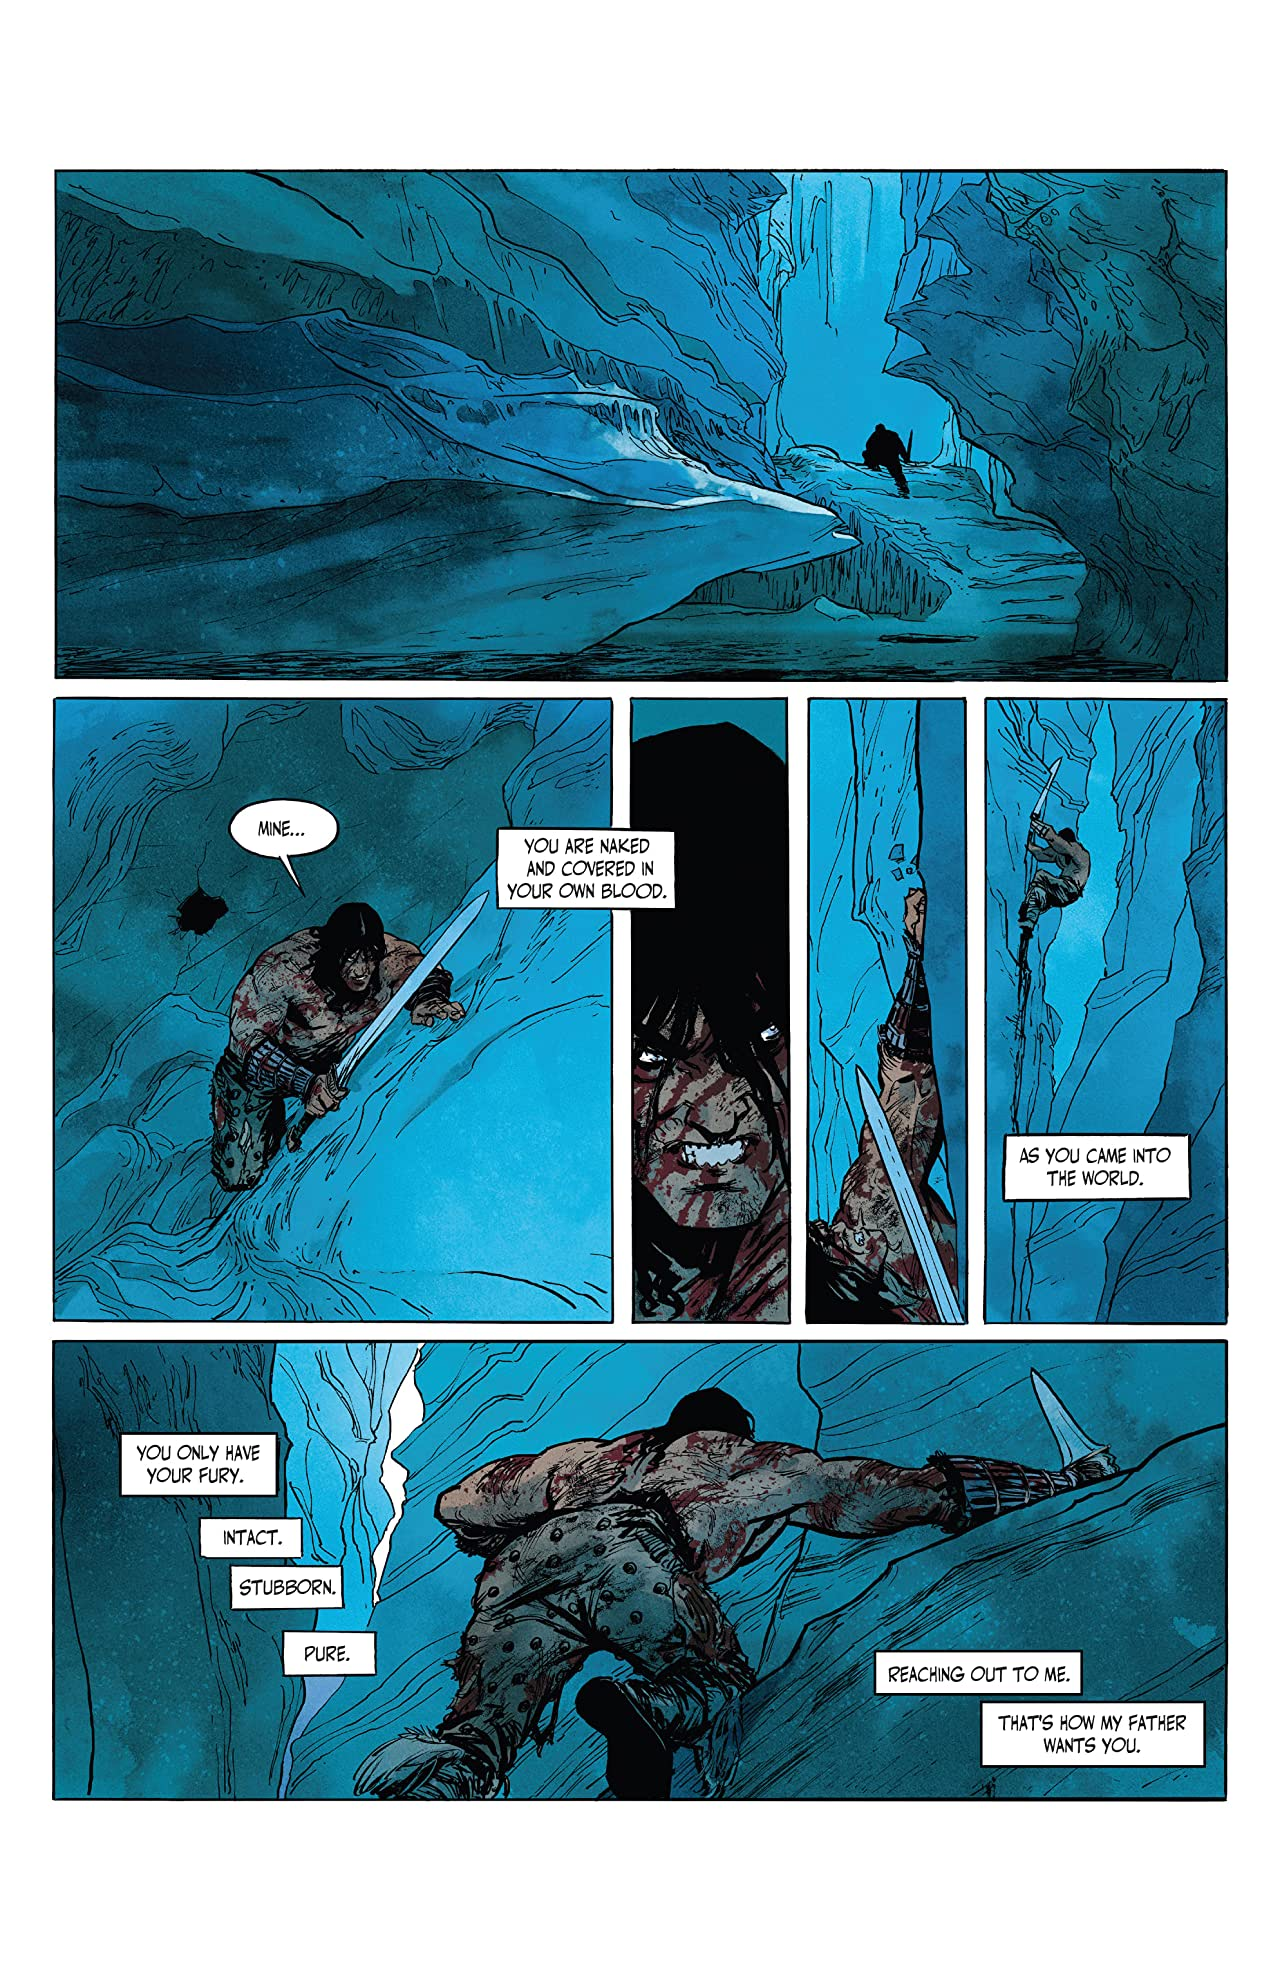 The Cimmerian #2: The Frost-Giant's Daughter